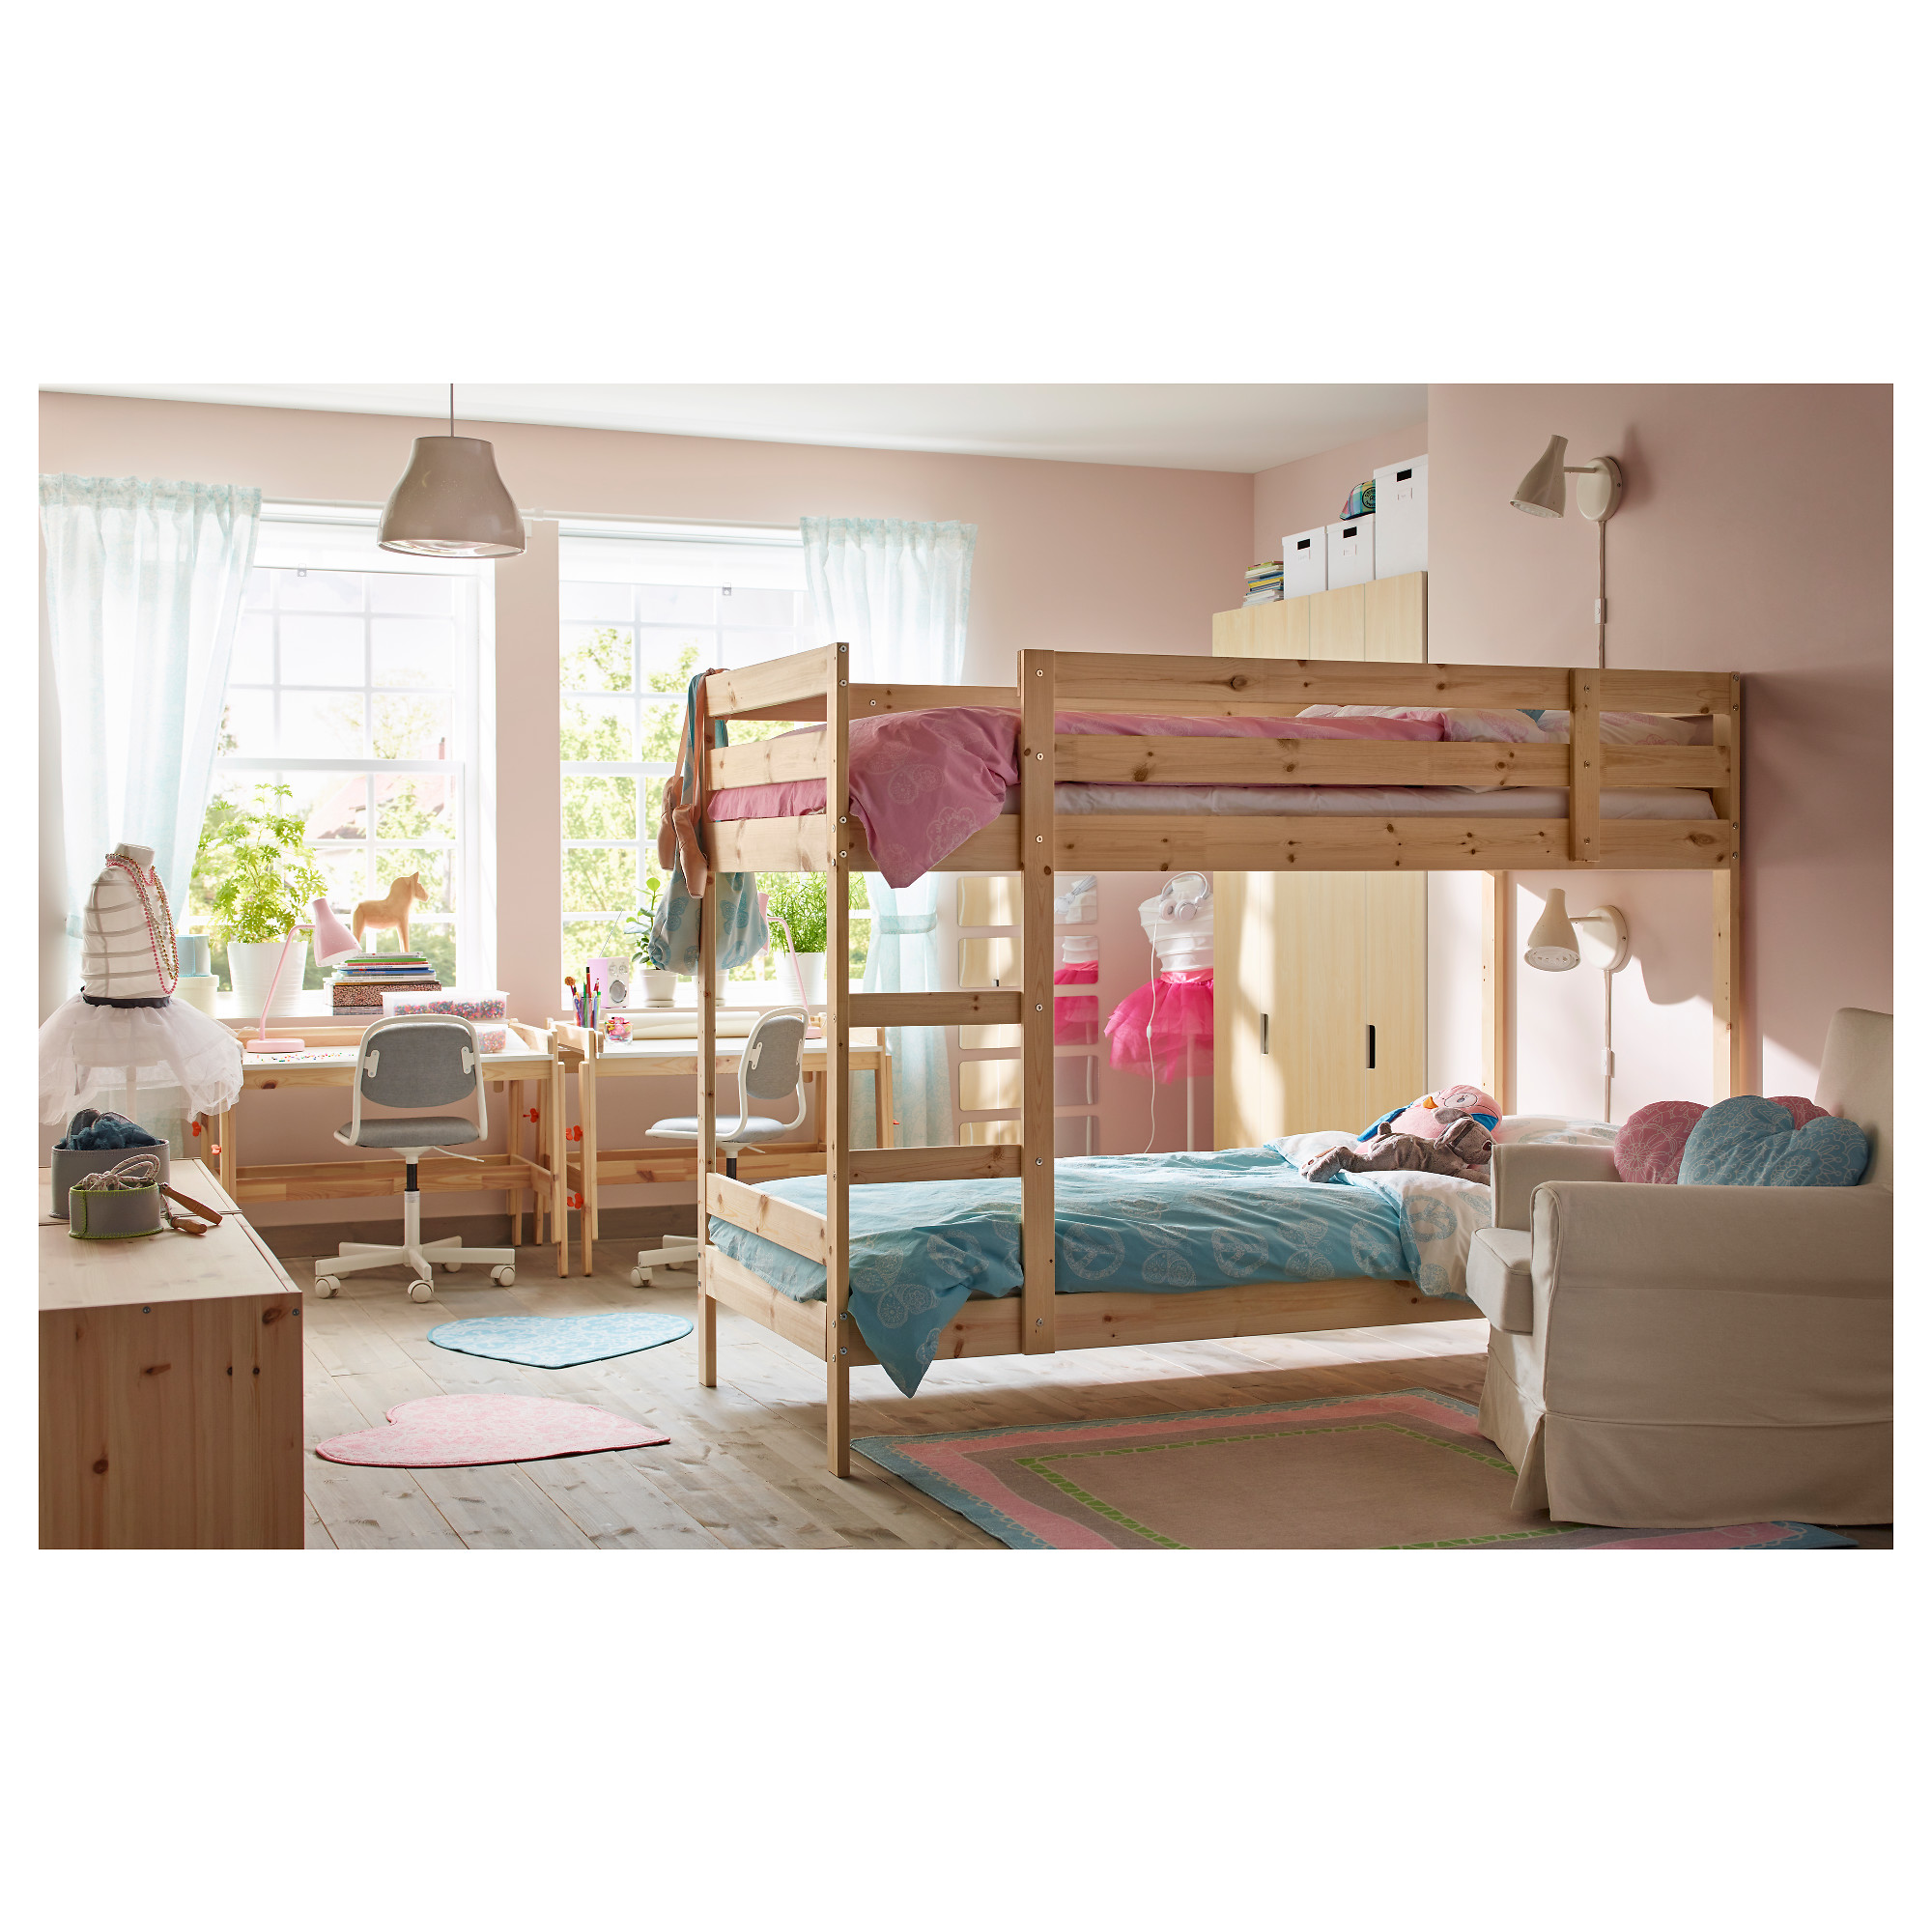 attic small design room go bed for beds ceiling with rooms unique images princess bedroom ceilings color low ideas cheap to loft bunk